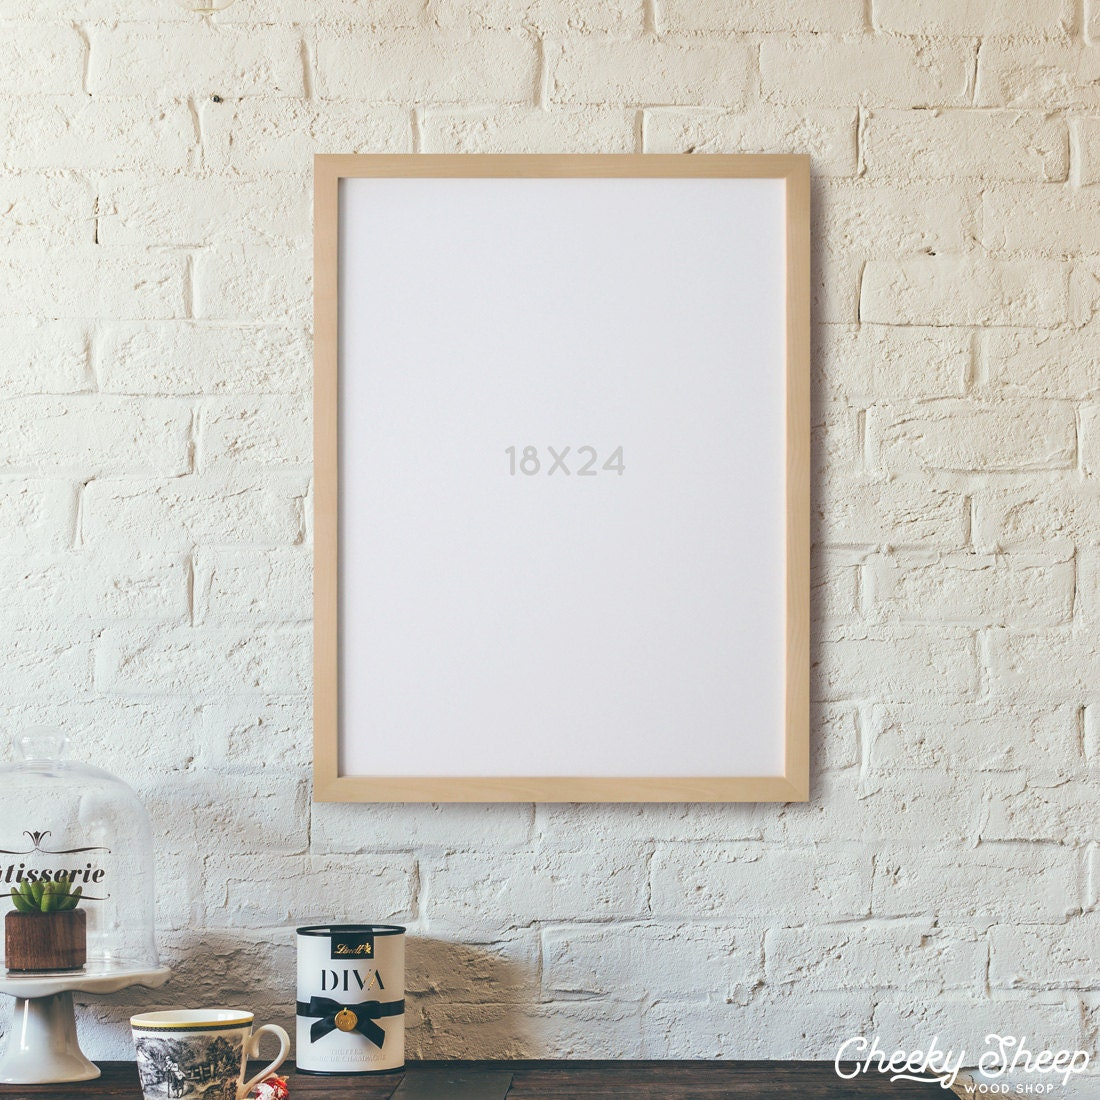 18x24 poster frame no glass 18 x 24 unfinished wood poster frame 18x24 poster frame no glass 18 x 24 unfinished wood poster frame art frame photo frame large poster frame large format frame jeuxipadfo Gallery